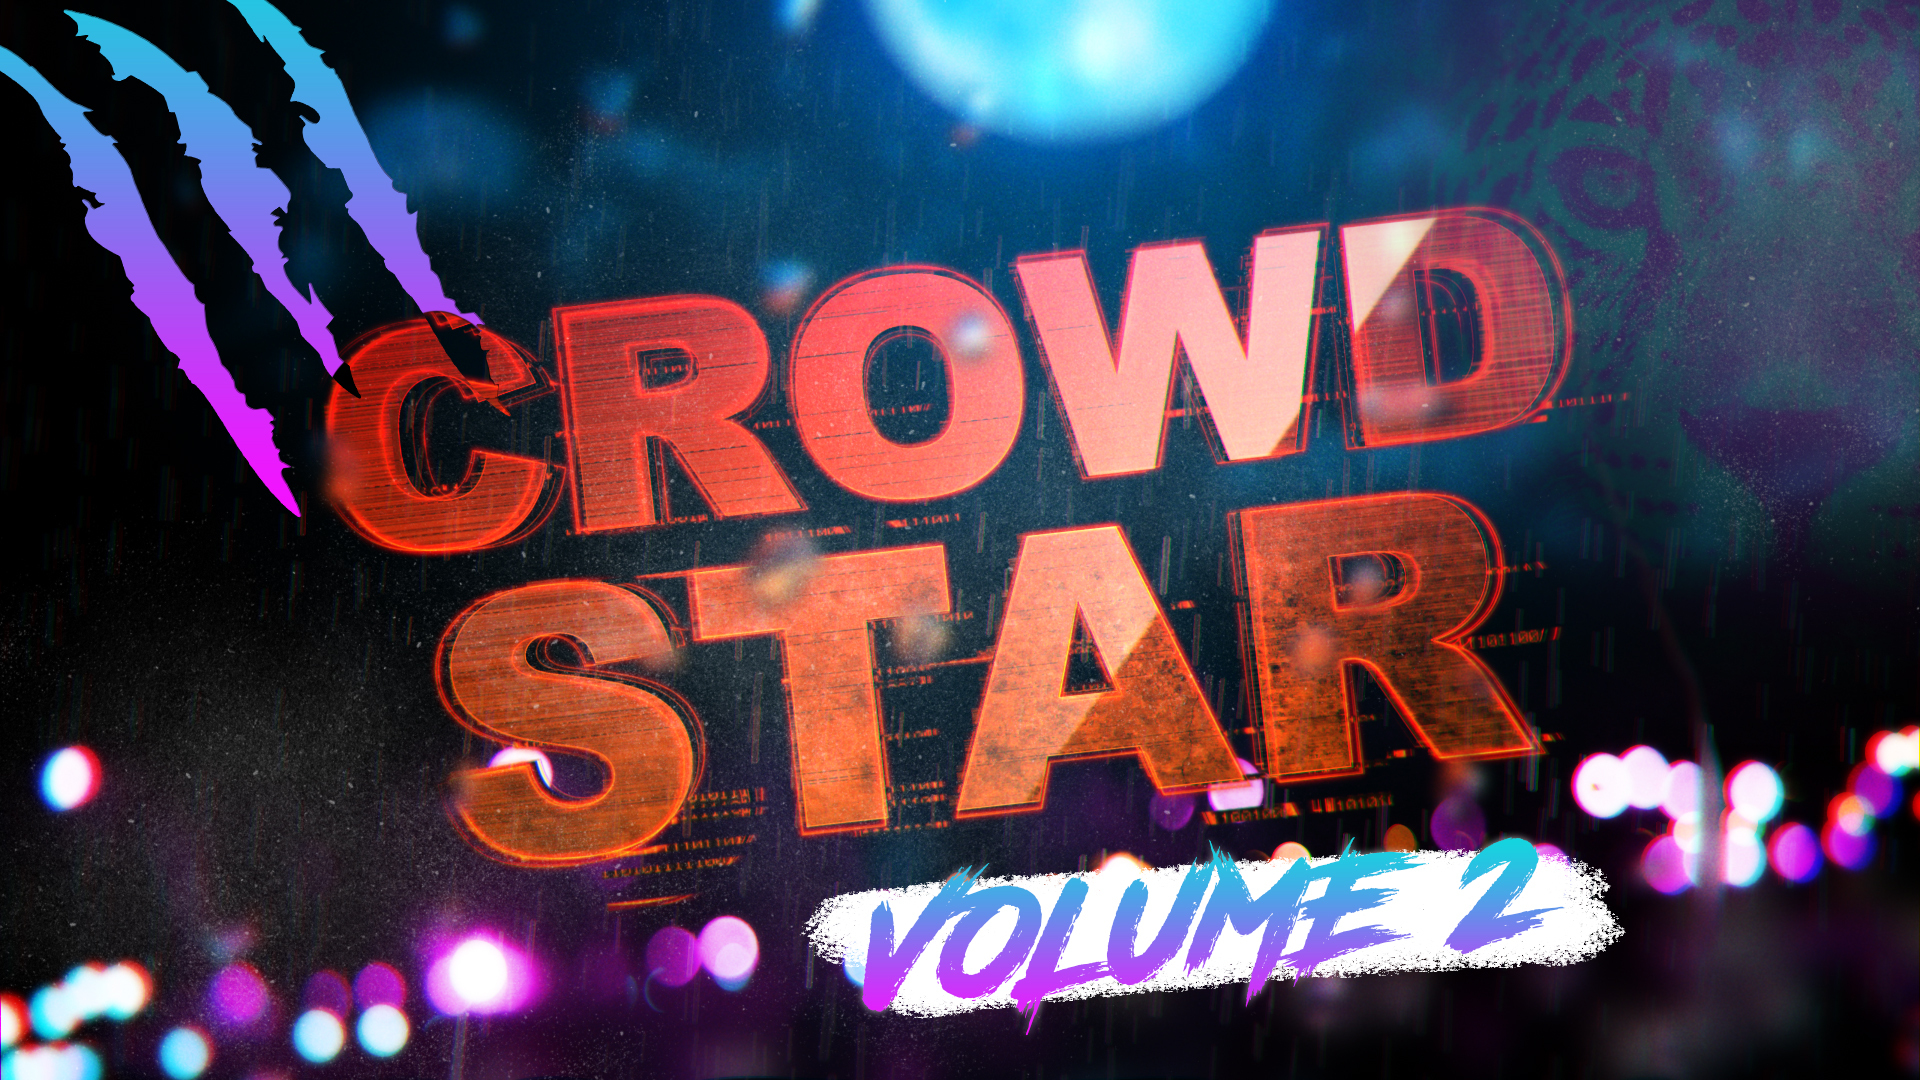 Crowd Star Volume 2